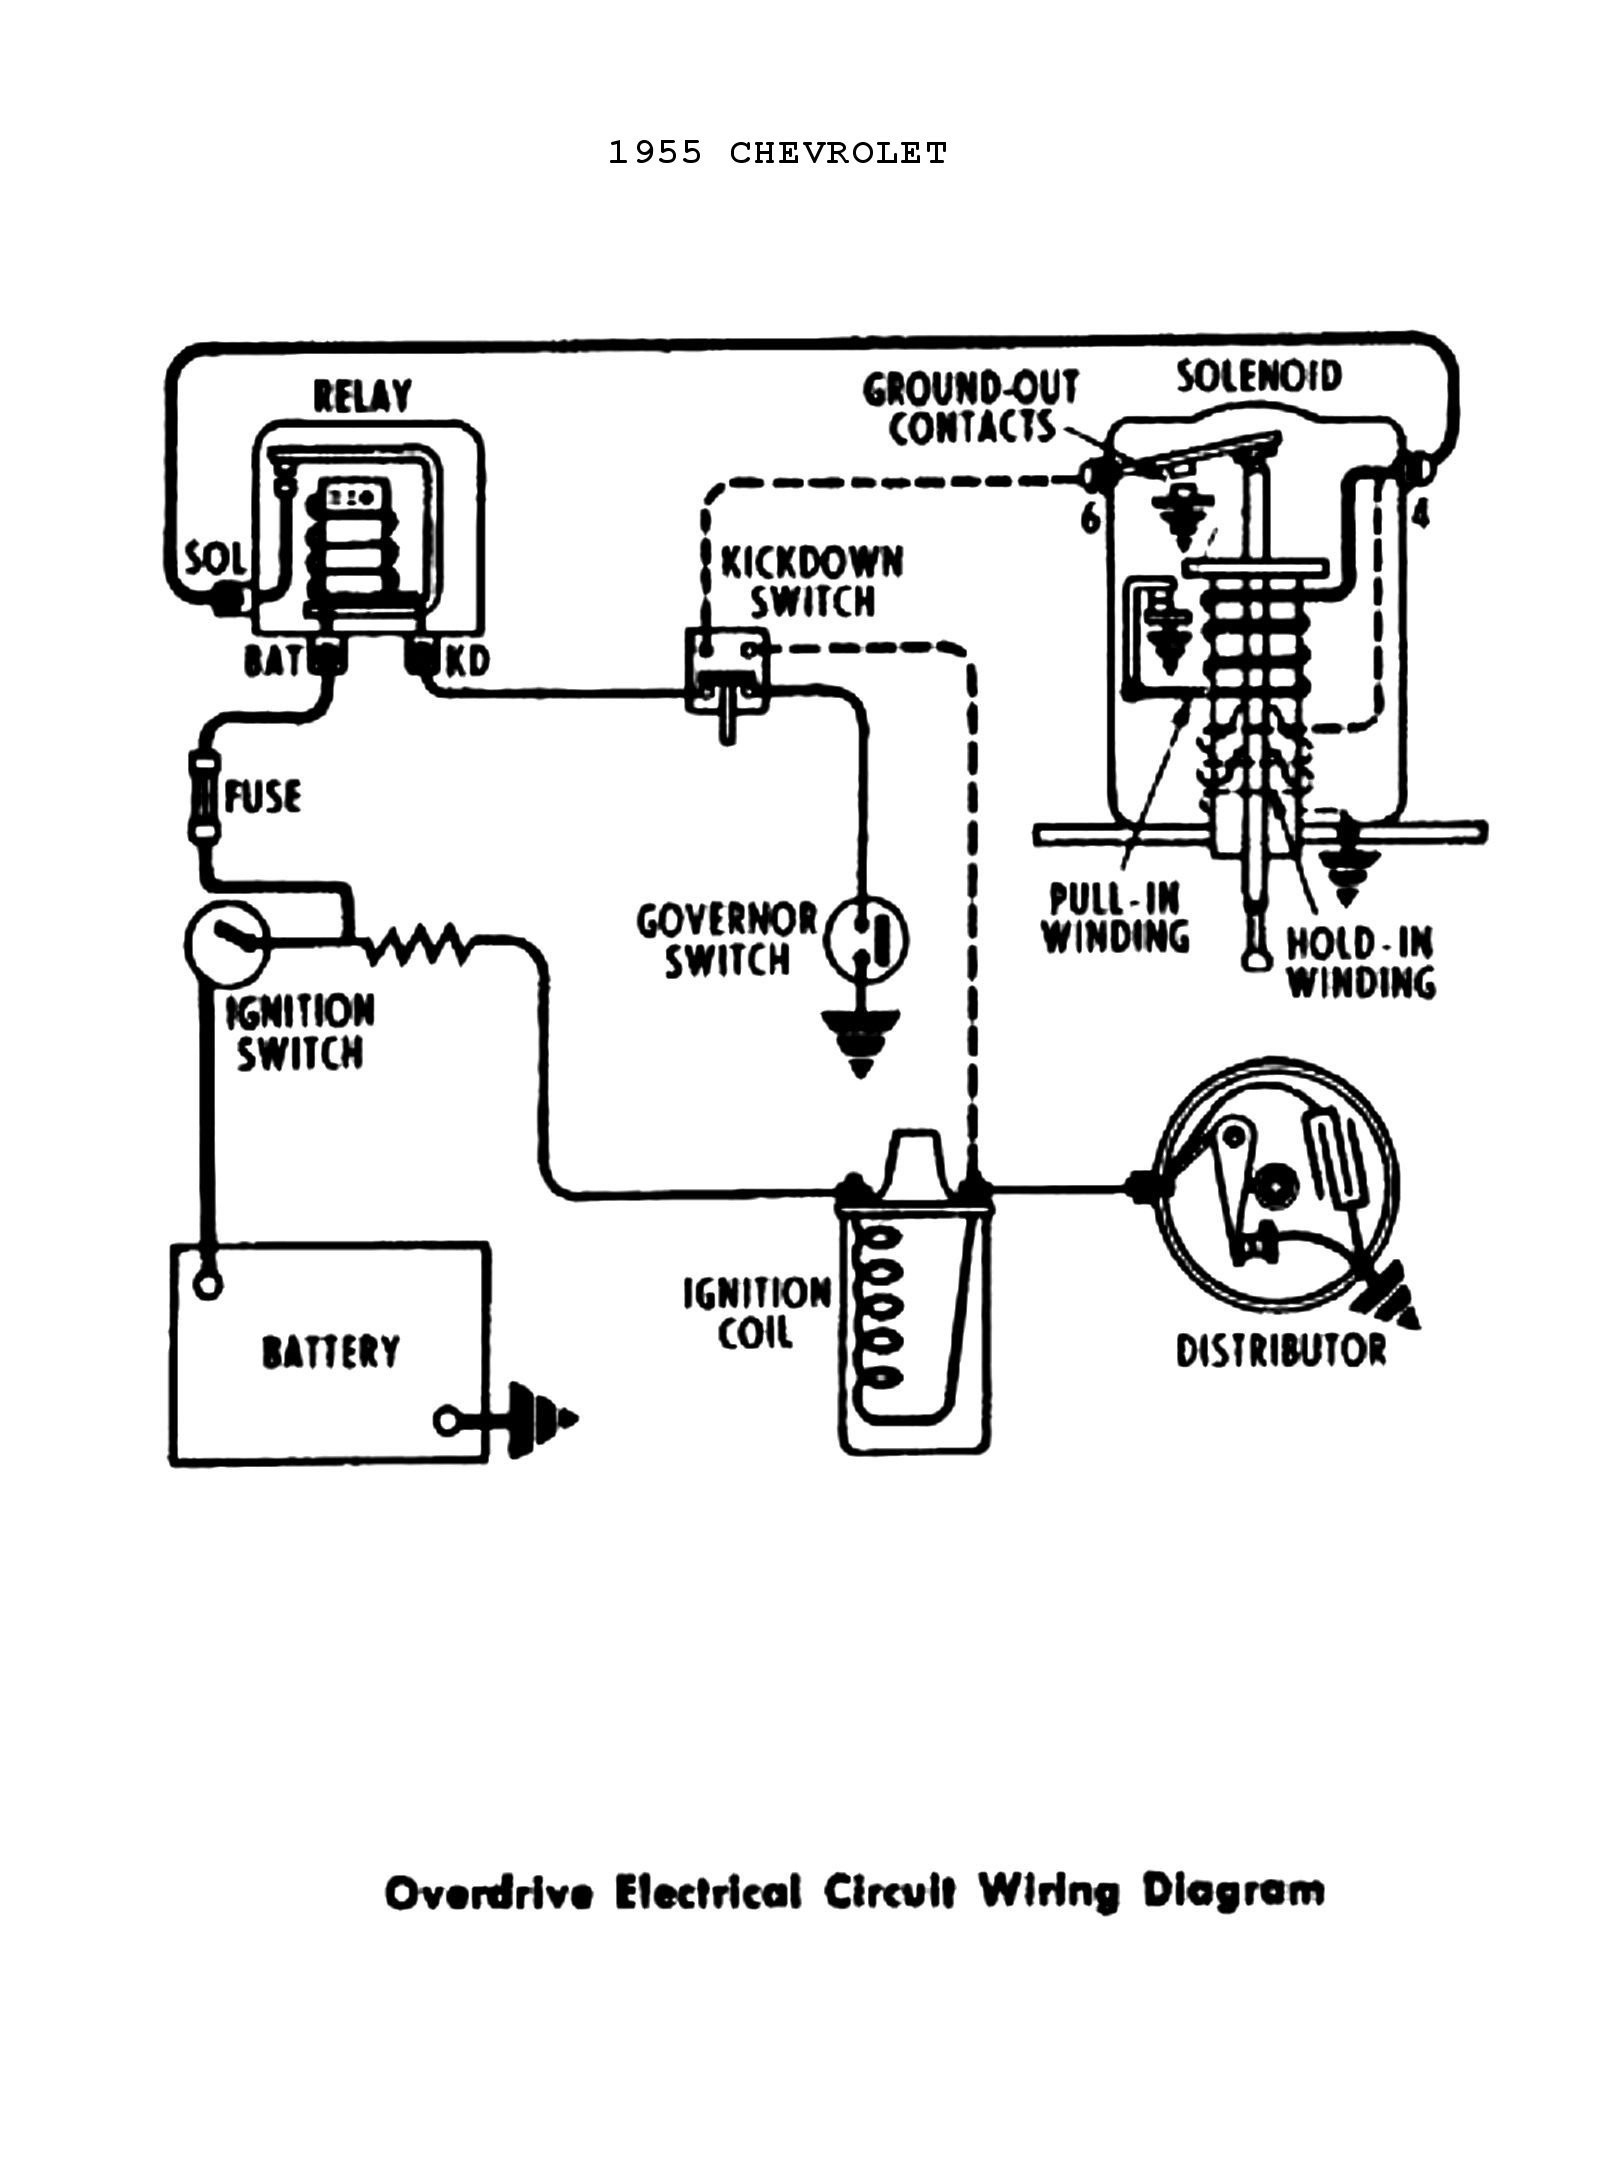 harness schematic gm wiring 15301646 gm body control module wiring diagram | free wiring diagram 1989 gm wiring harness schematic